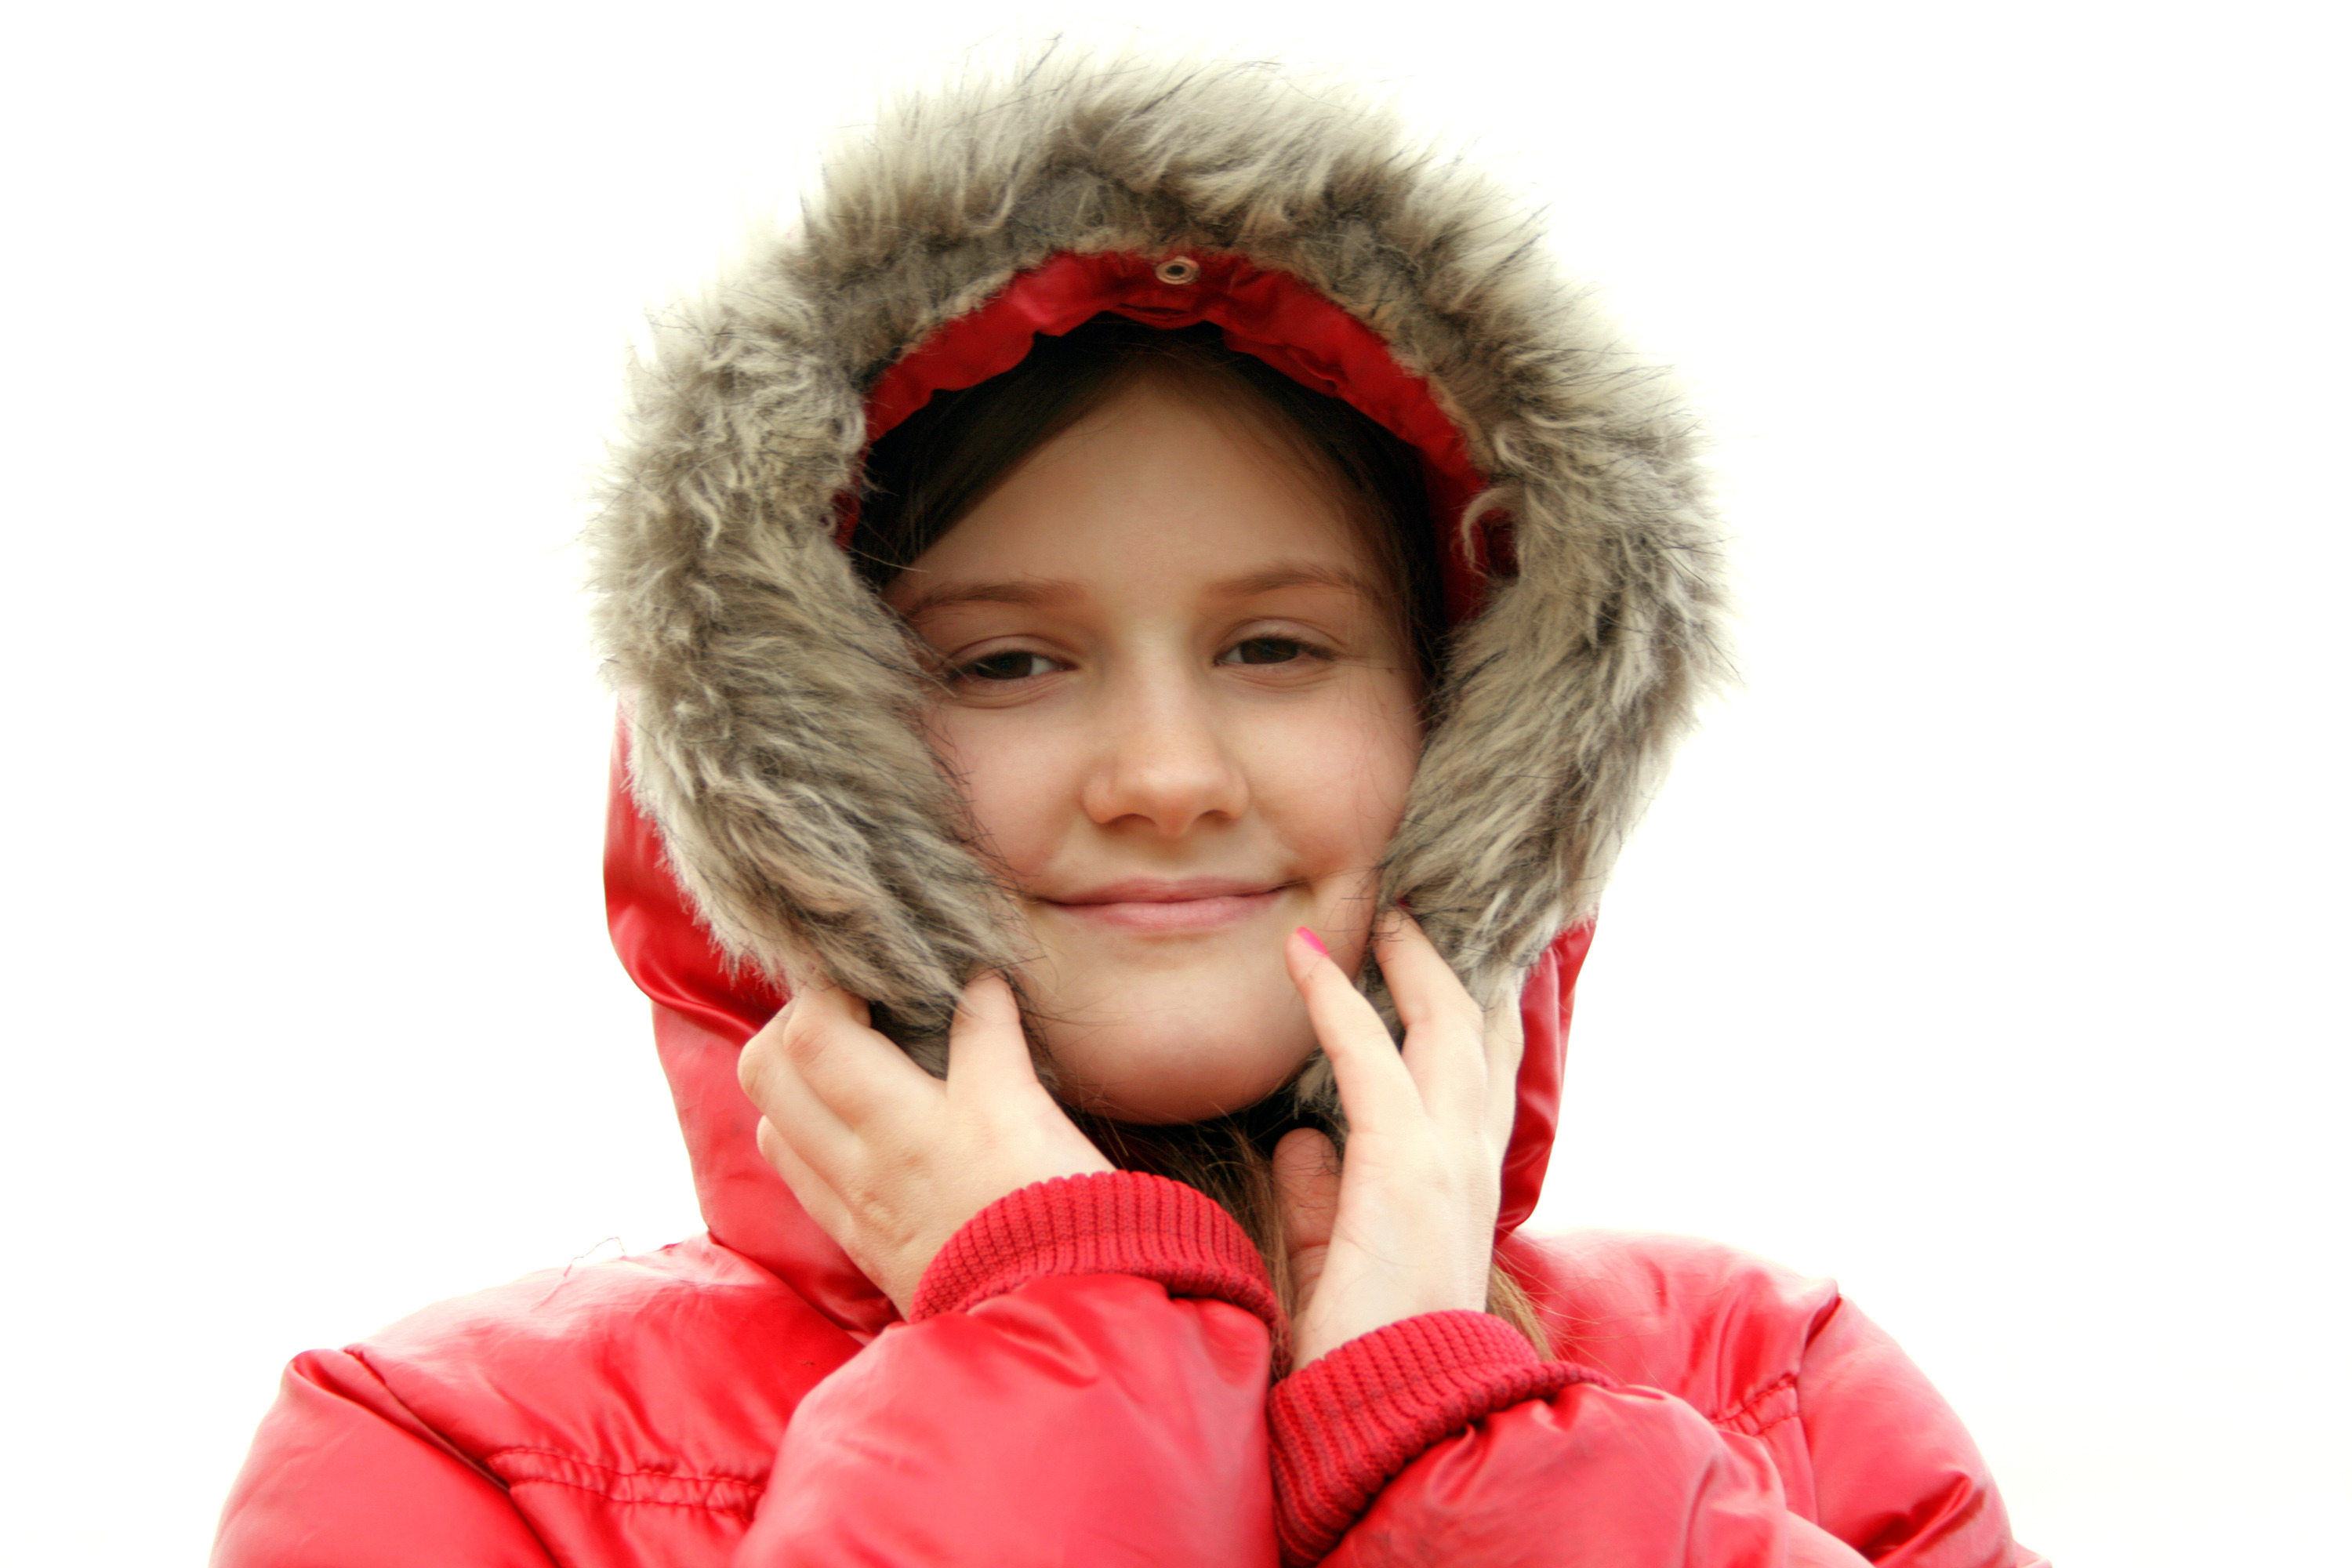 Girl in Winter Jacket